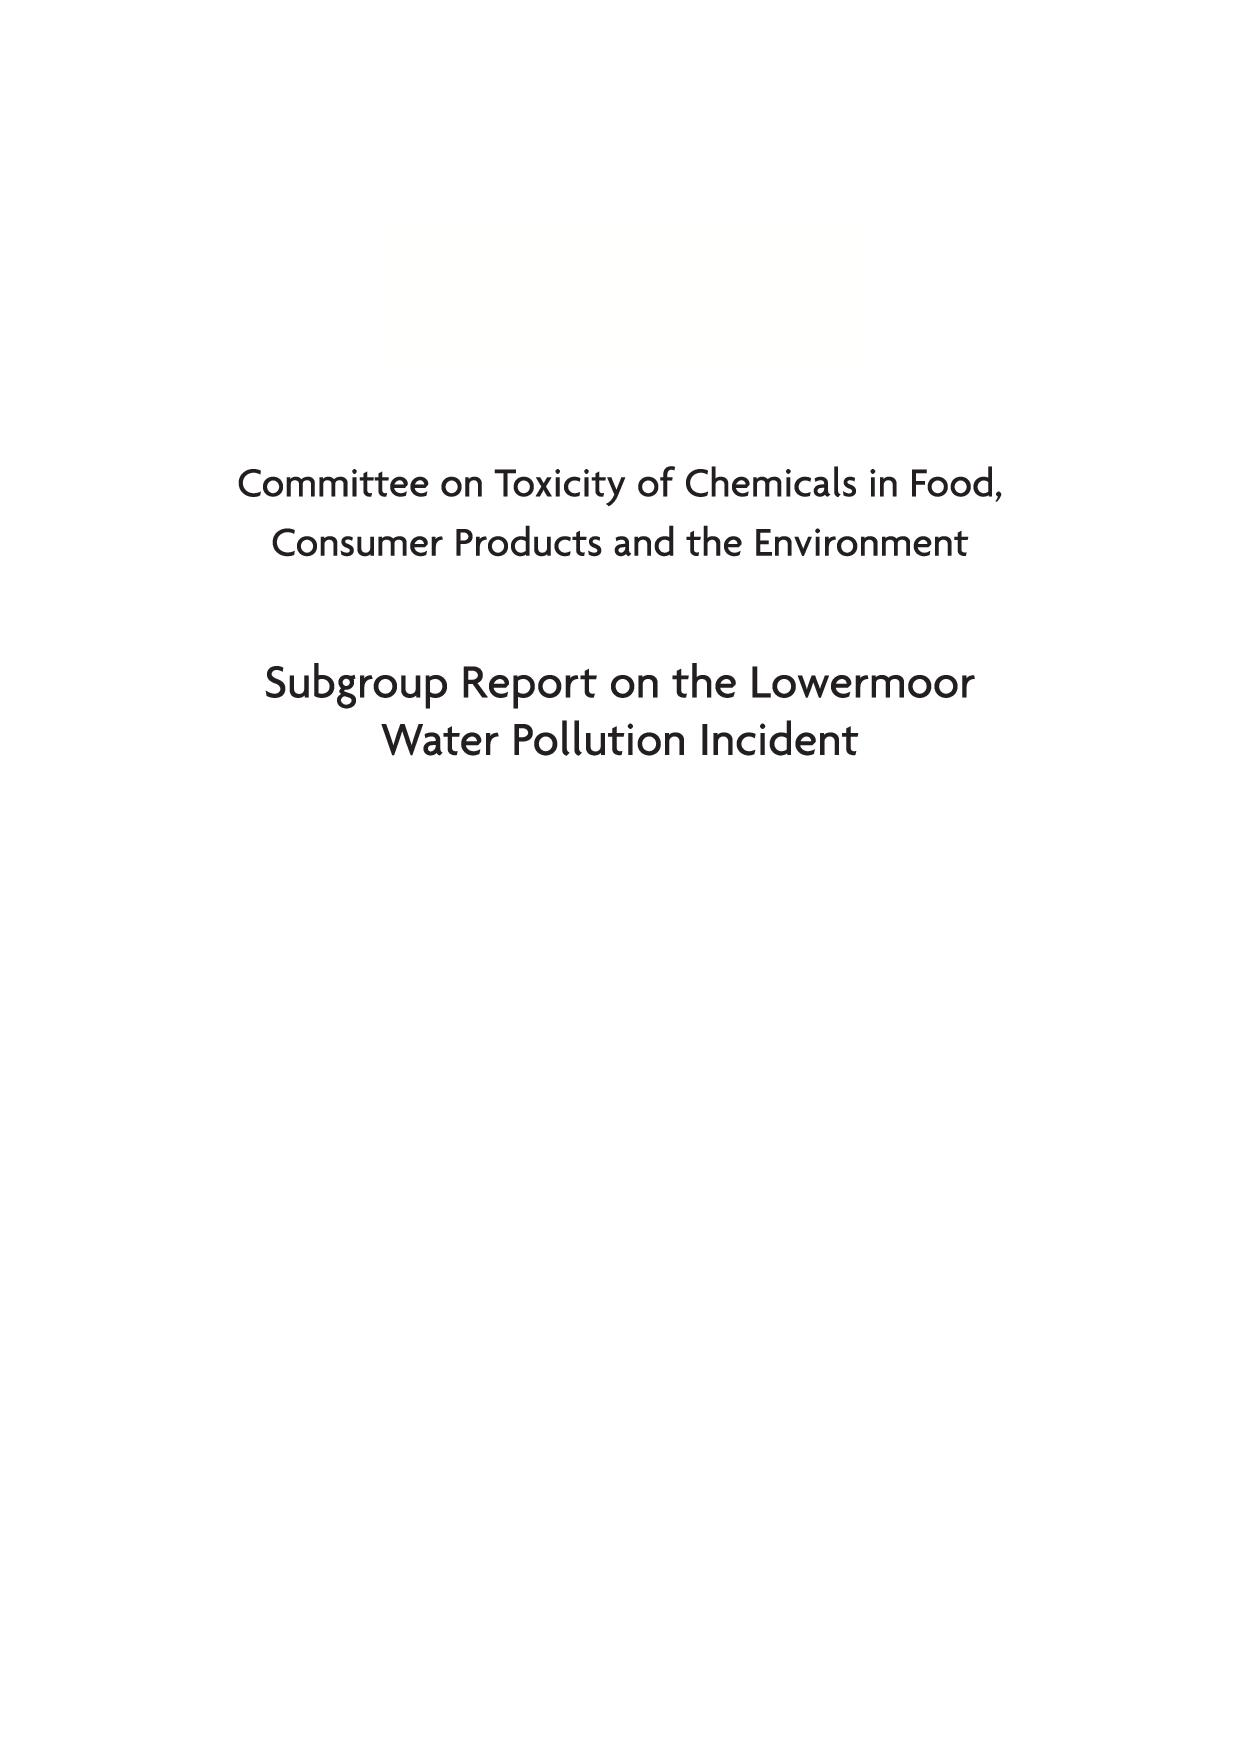 Subgroup report on the lowermoor water pollution incident